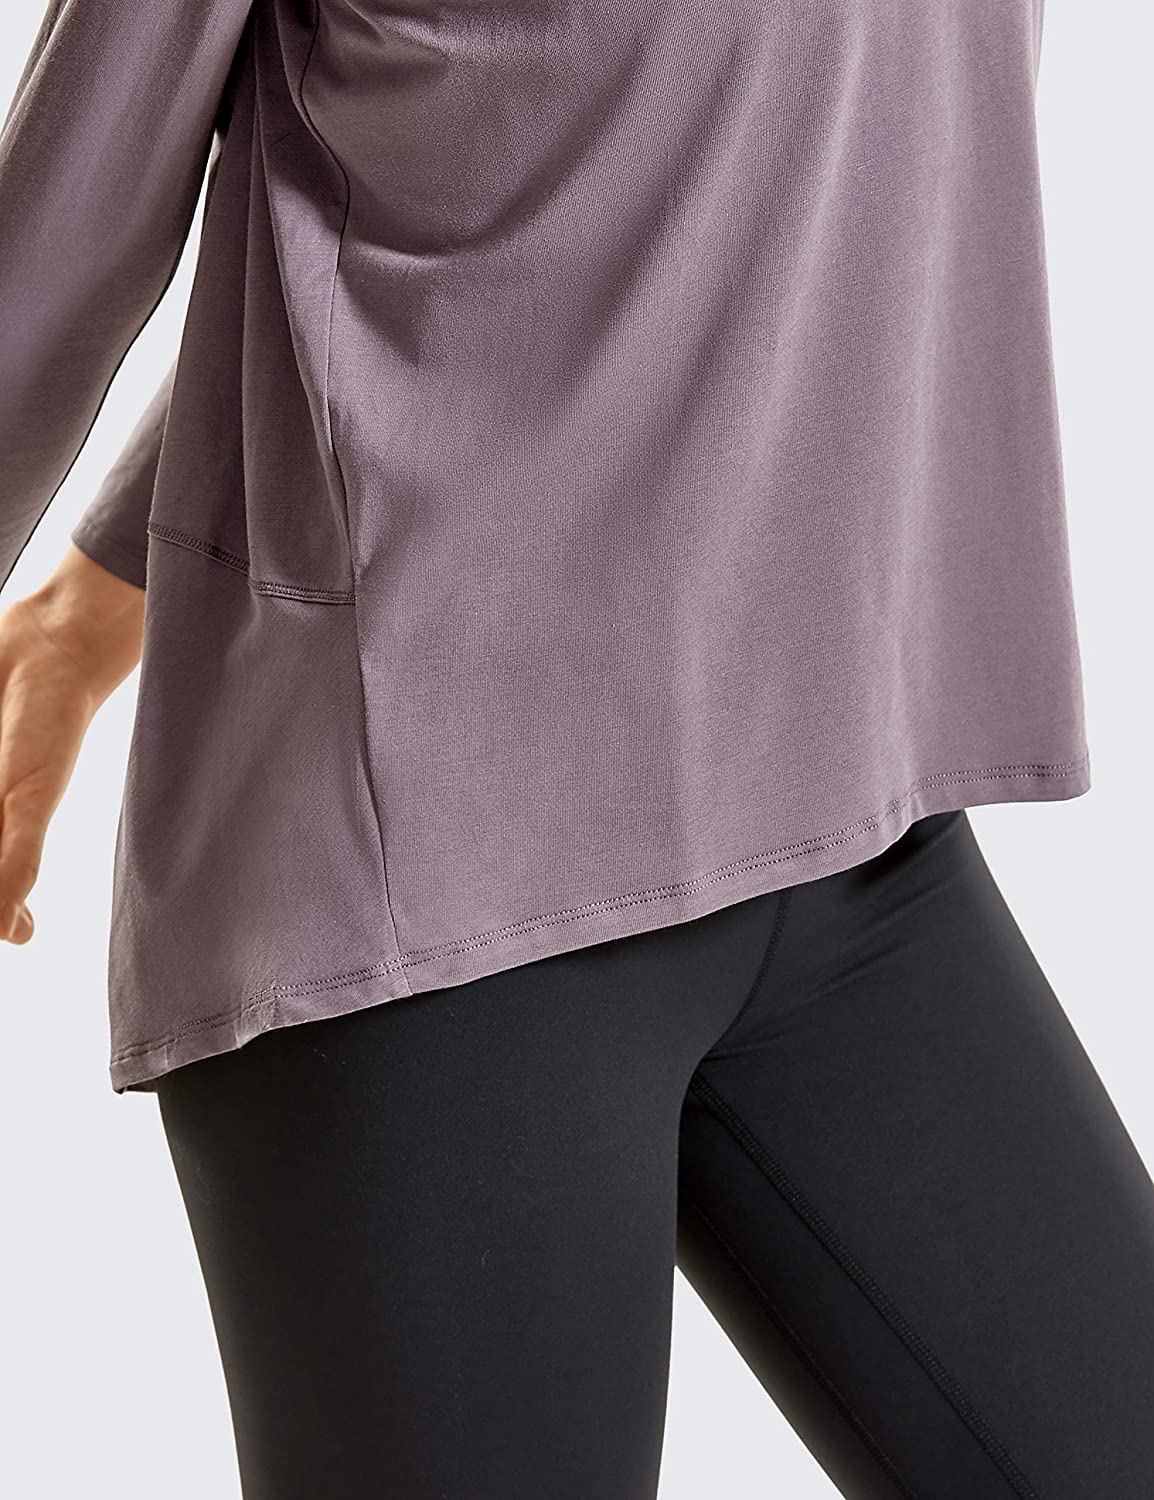 CRZ YOGA Womens Casual Long Sleeves Pima Cotton Running Workout T-Shirt Sports Boat Neck Top